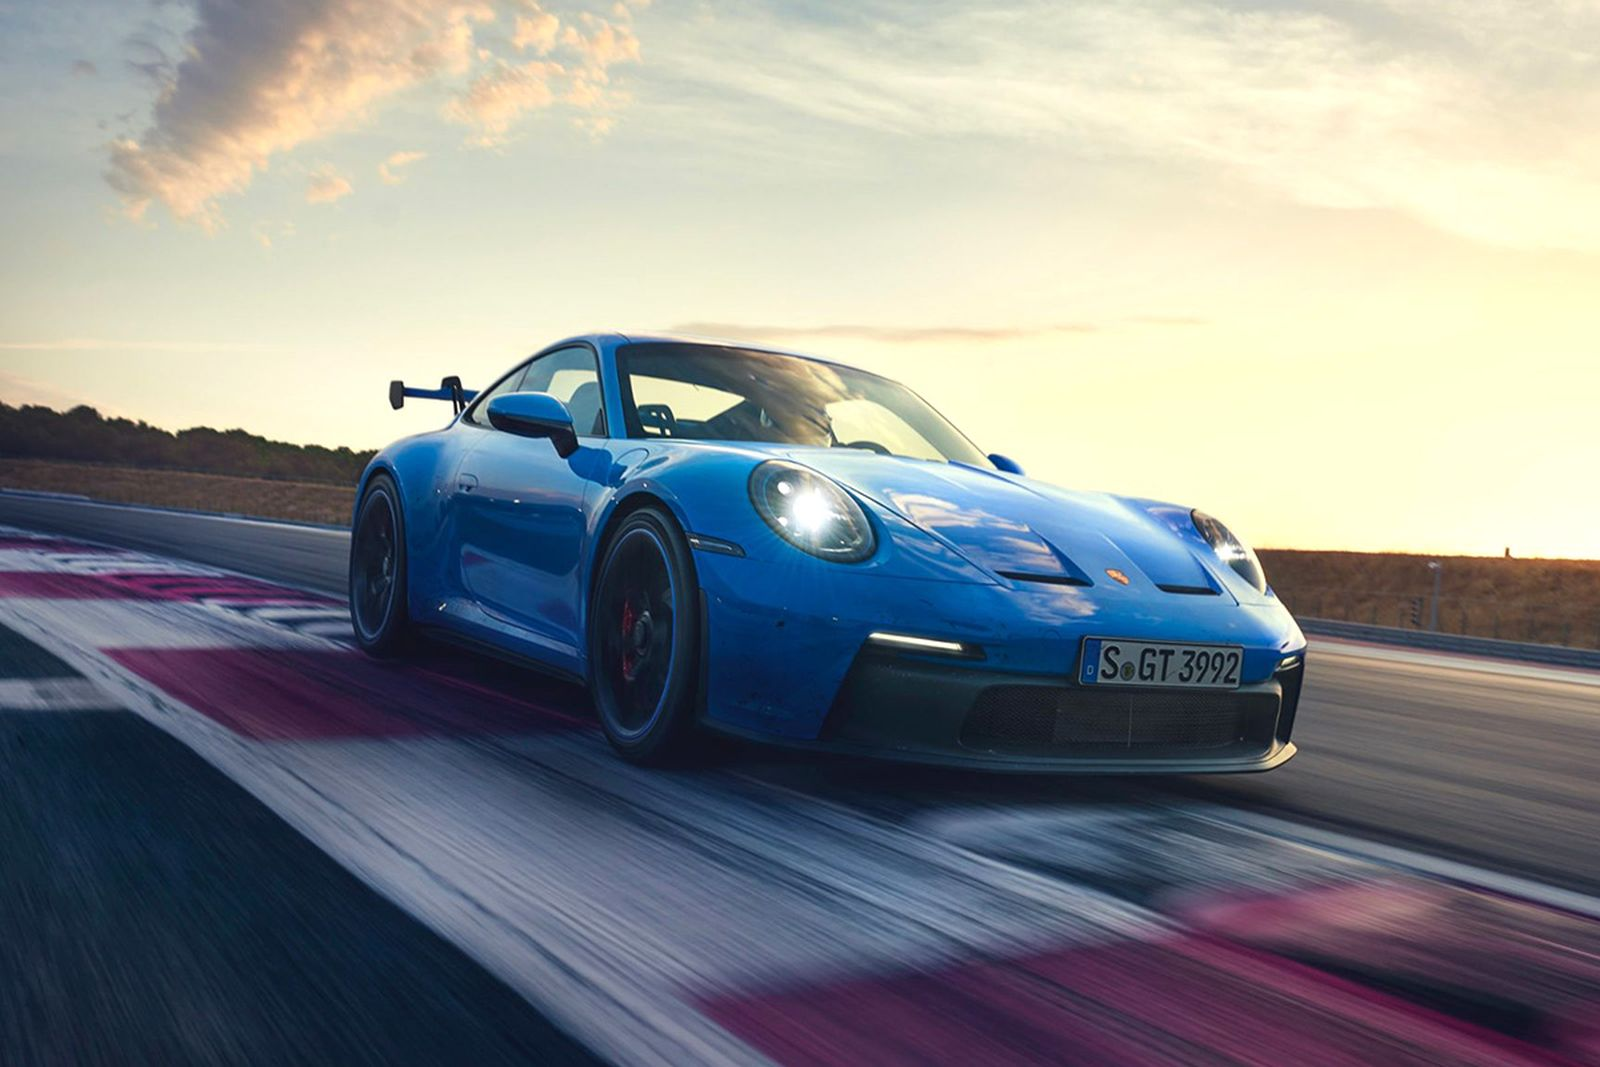 The new Porsche 911 GT3, which debuted in a striking Shark Blue